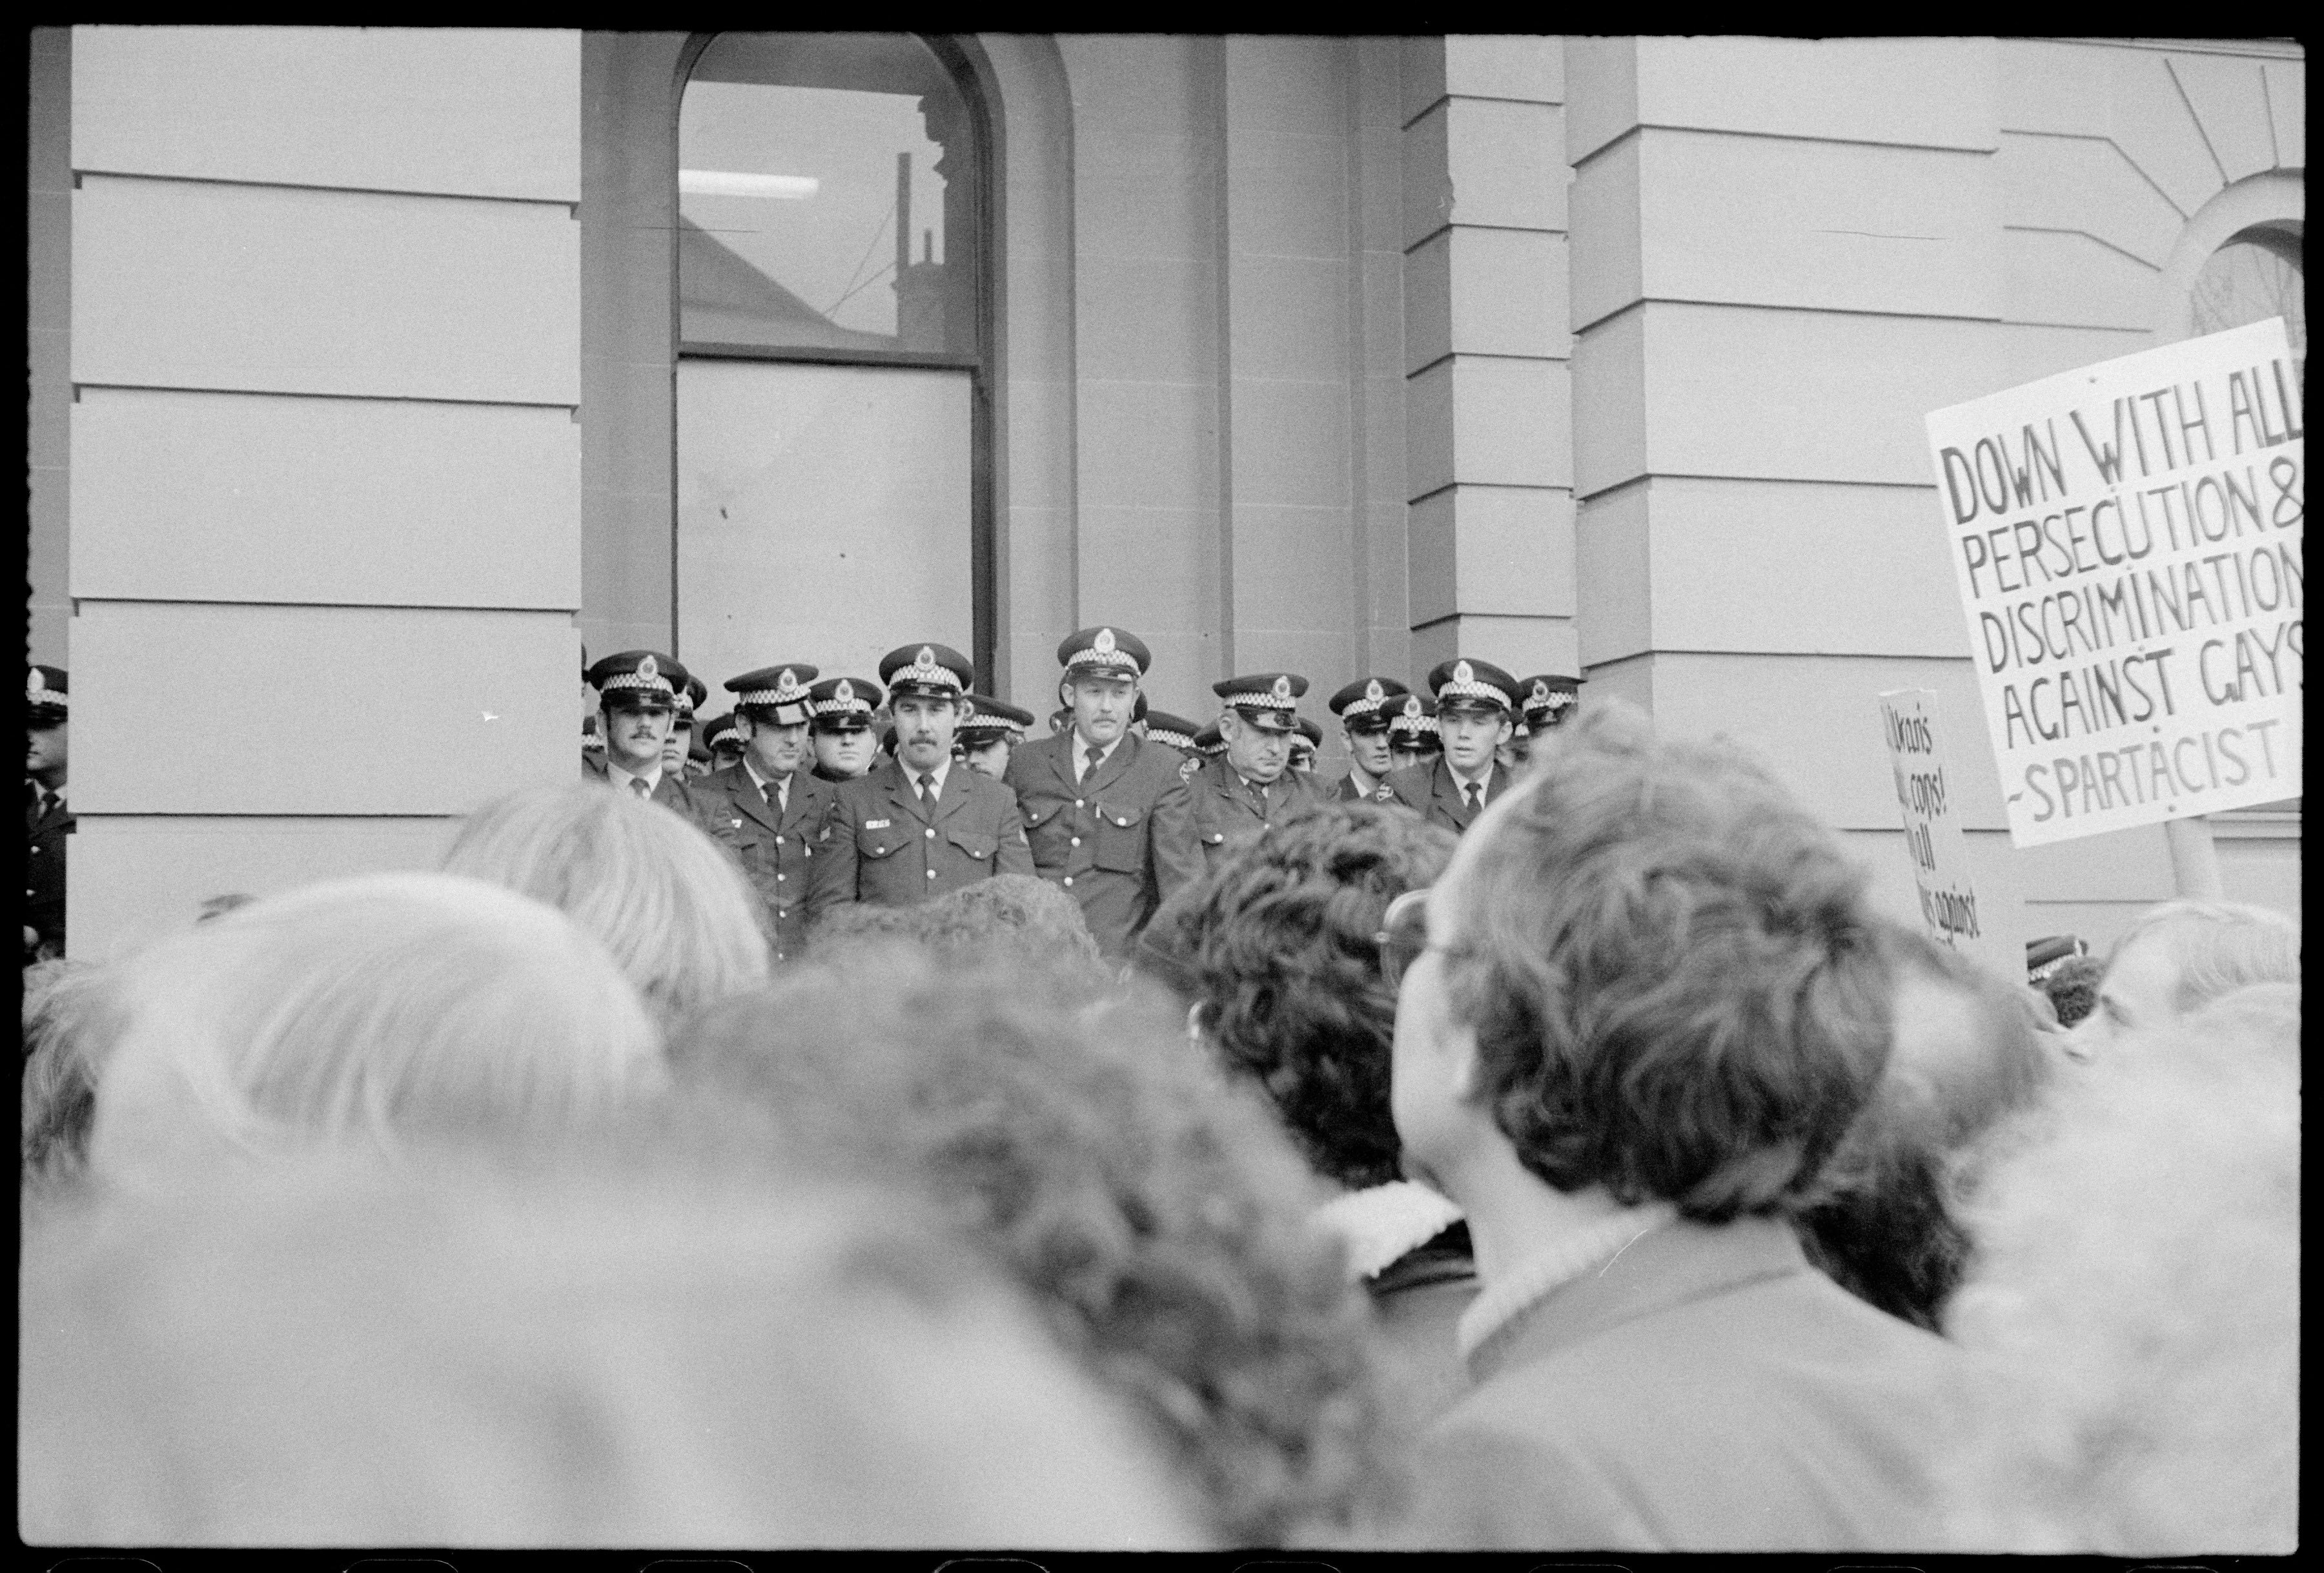 Placard: 'Down With All Persecution & Discrimination Against Gays - Spartacist', Gay Rights demonstration outside Central Police Court, Liverpool St, Sydney. Tribune Collection. NB: neg flipped